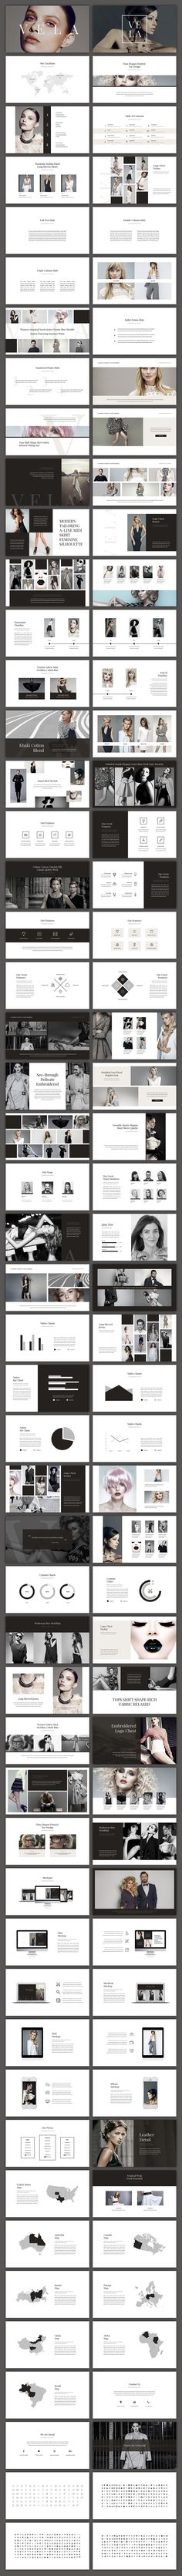 Vela PowerPoint Template by SlideStation on @creativemarket